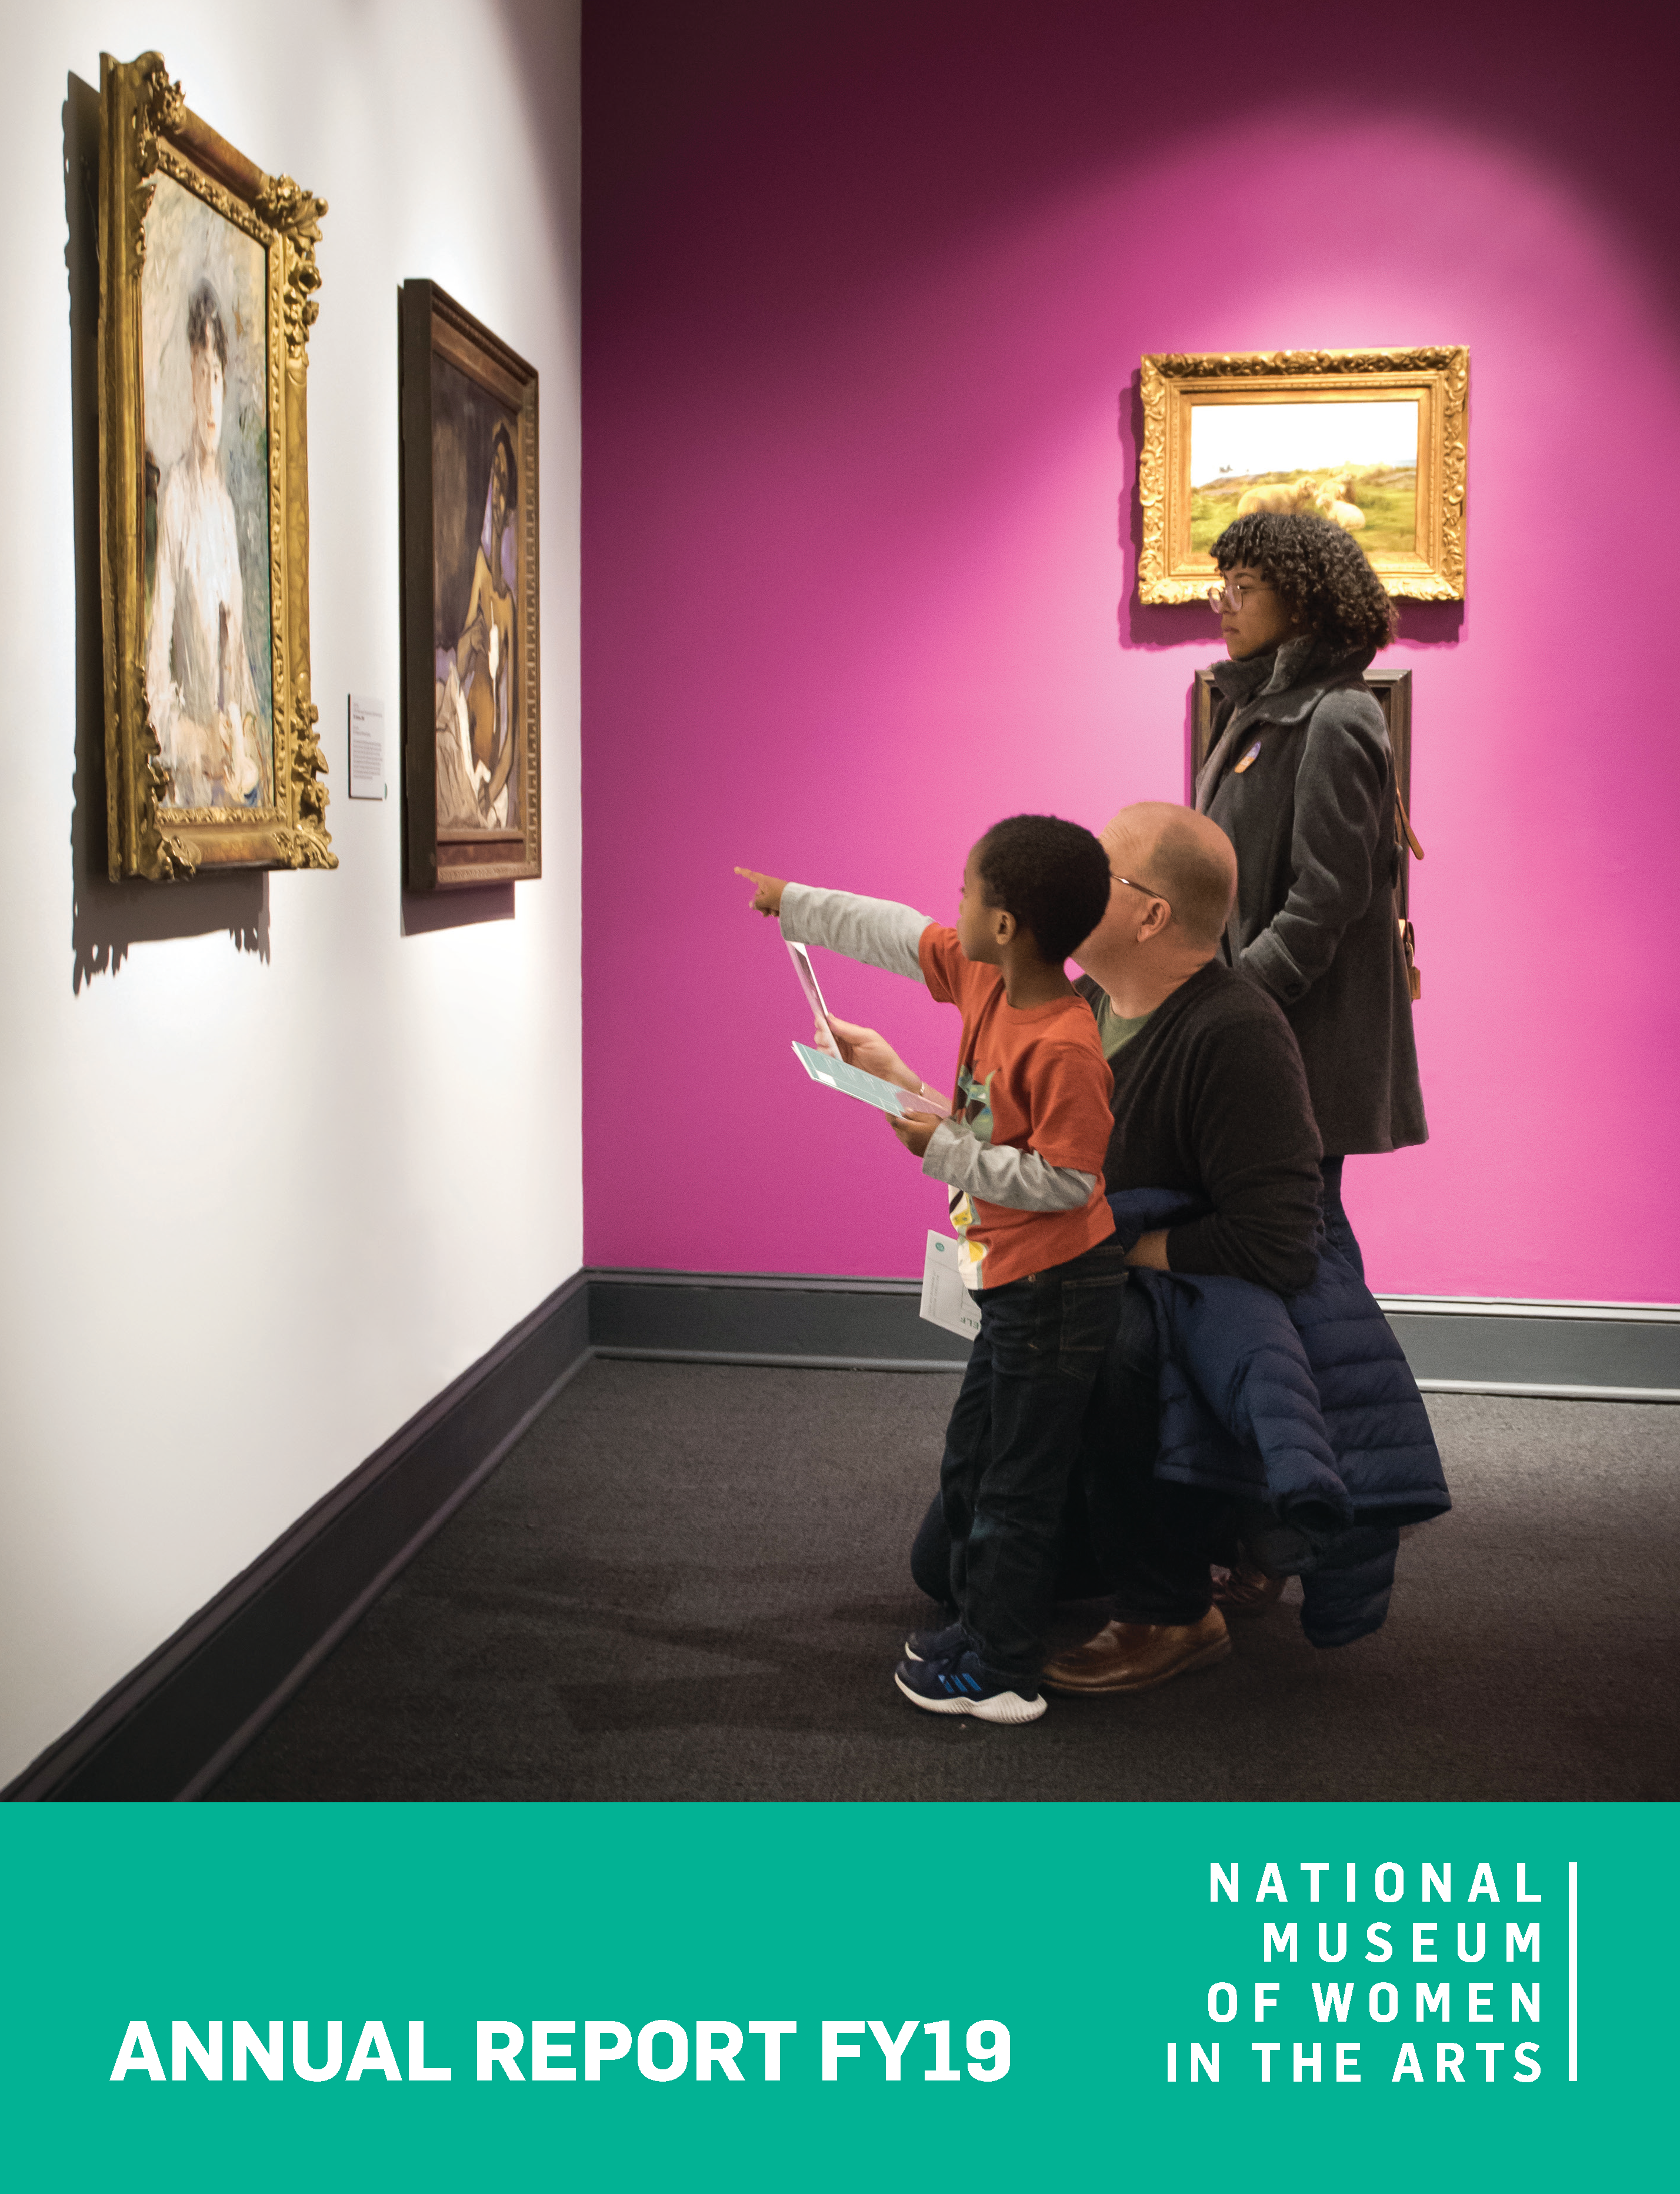 Cover of the 2018 annual report shows an image of a child and two adults in the galleries looking at two painted artworks on the museum wall.